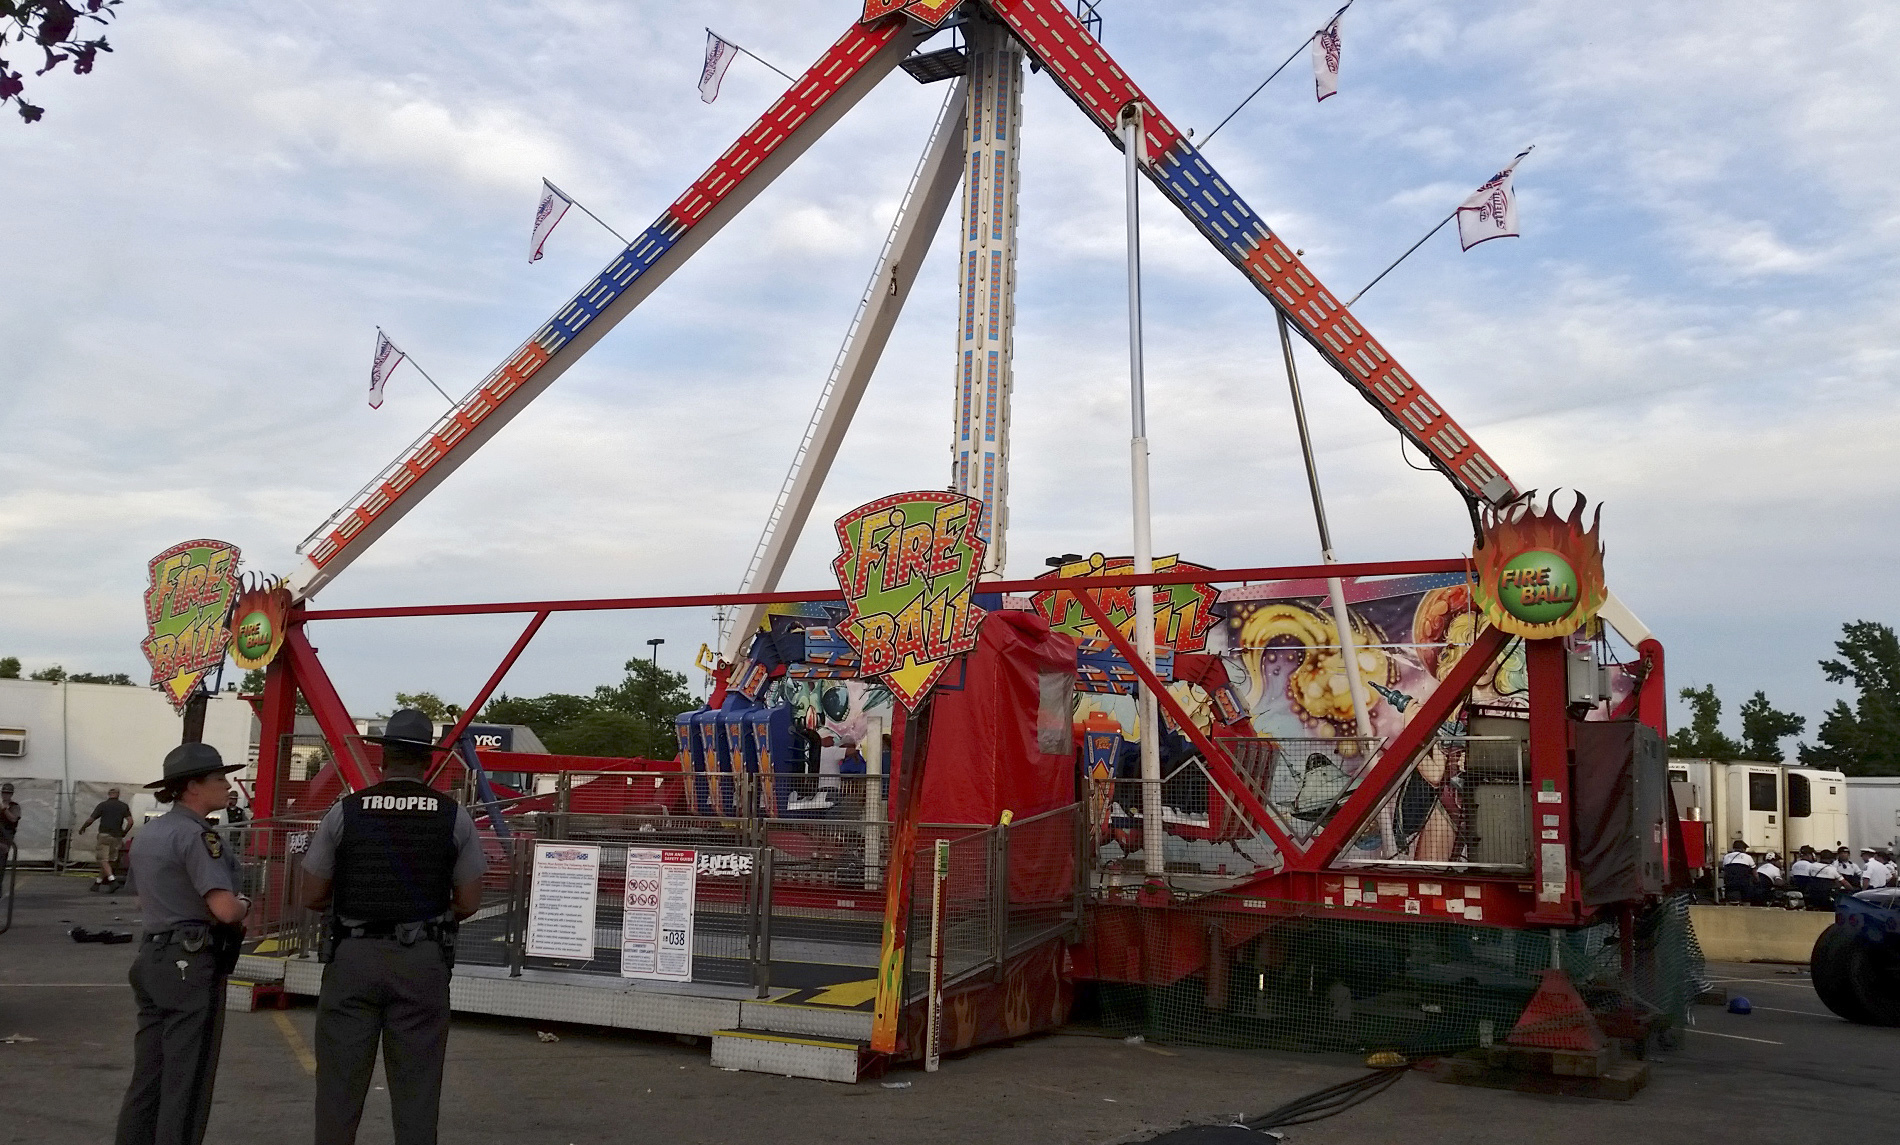 Authorities stand near the Fire Ball amusement ride after the ride malfunctioned at the Ohio State Fair, July 26, 2017, in Columbus, Ohio.